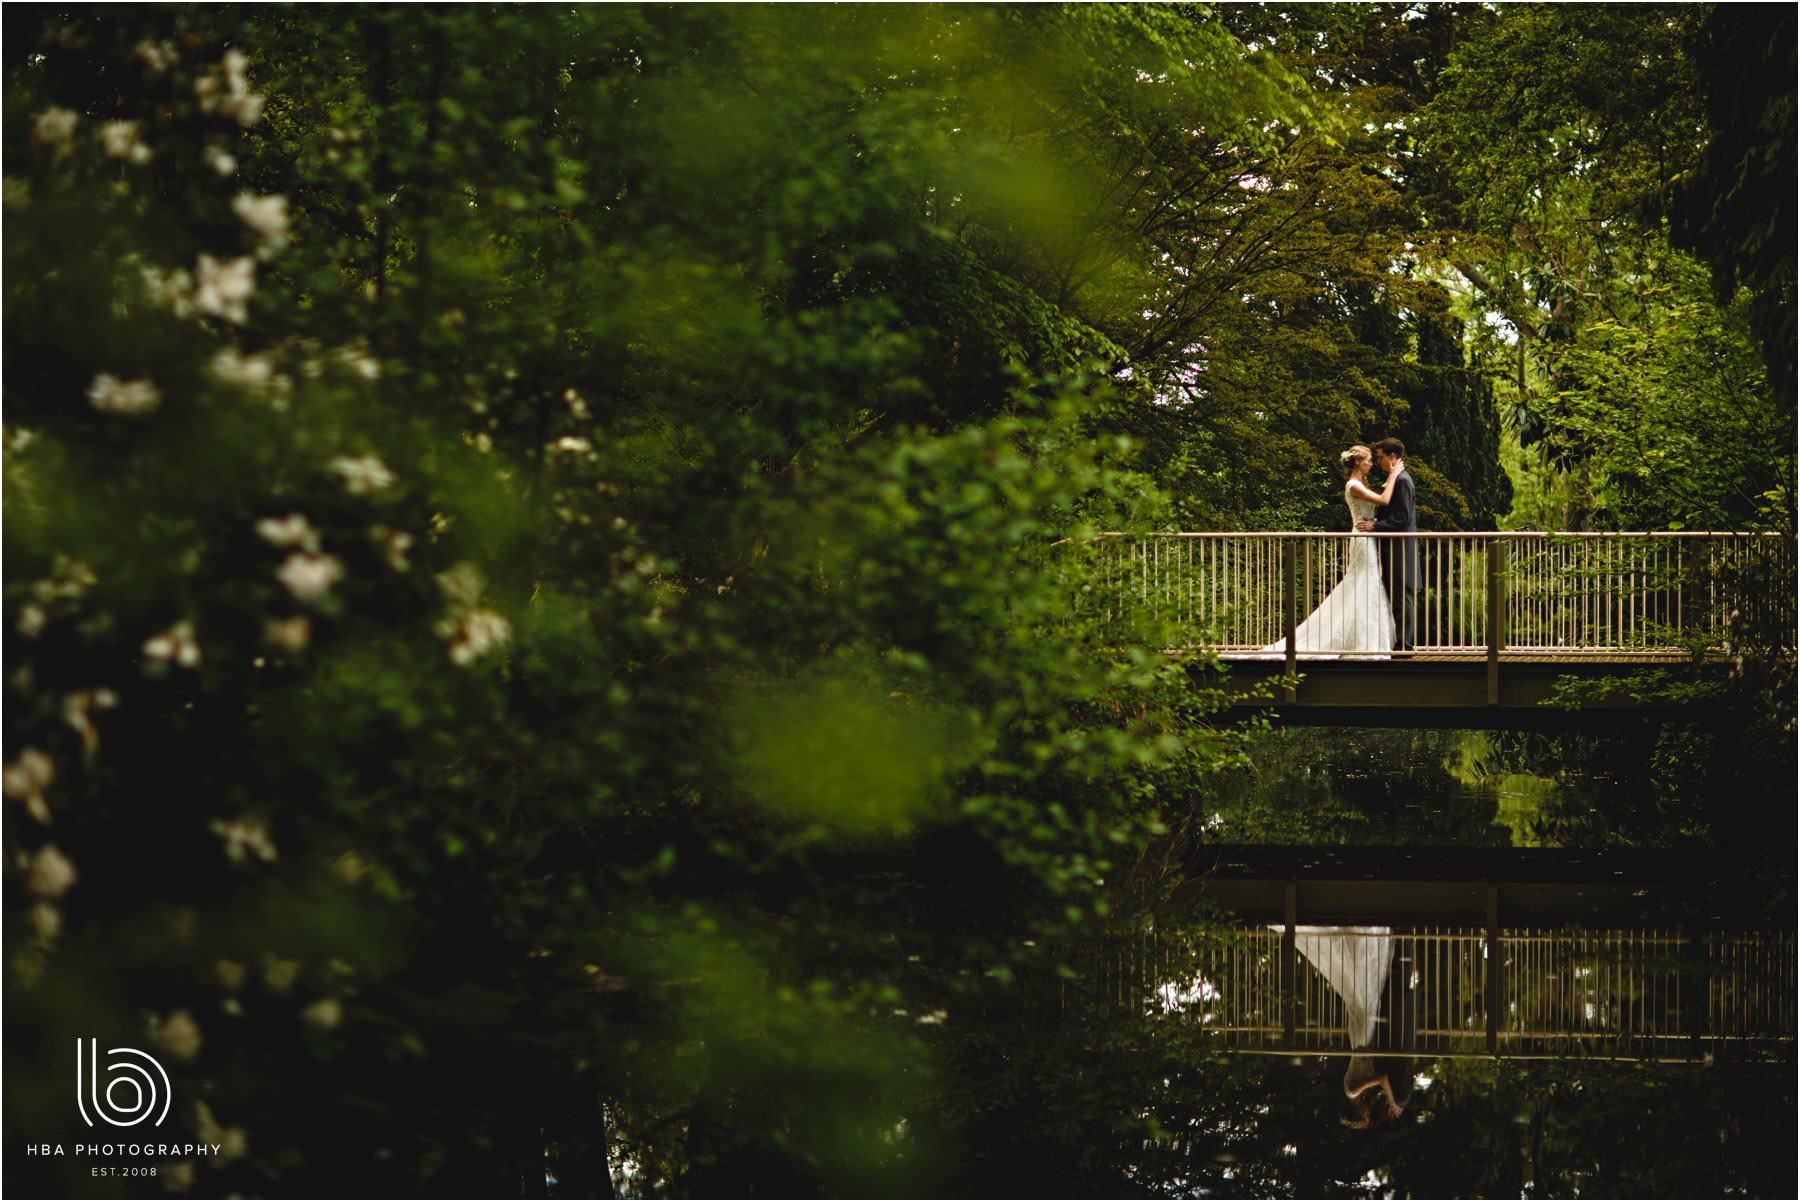 the bride & groom by the lake